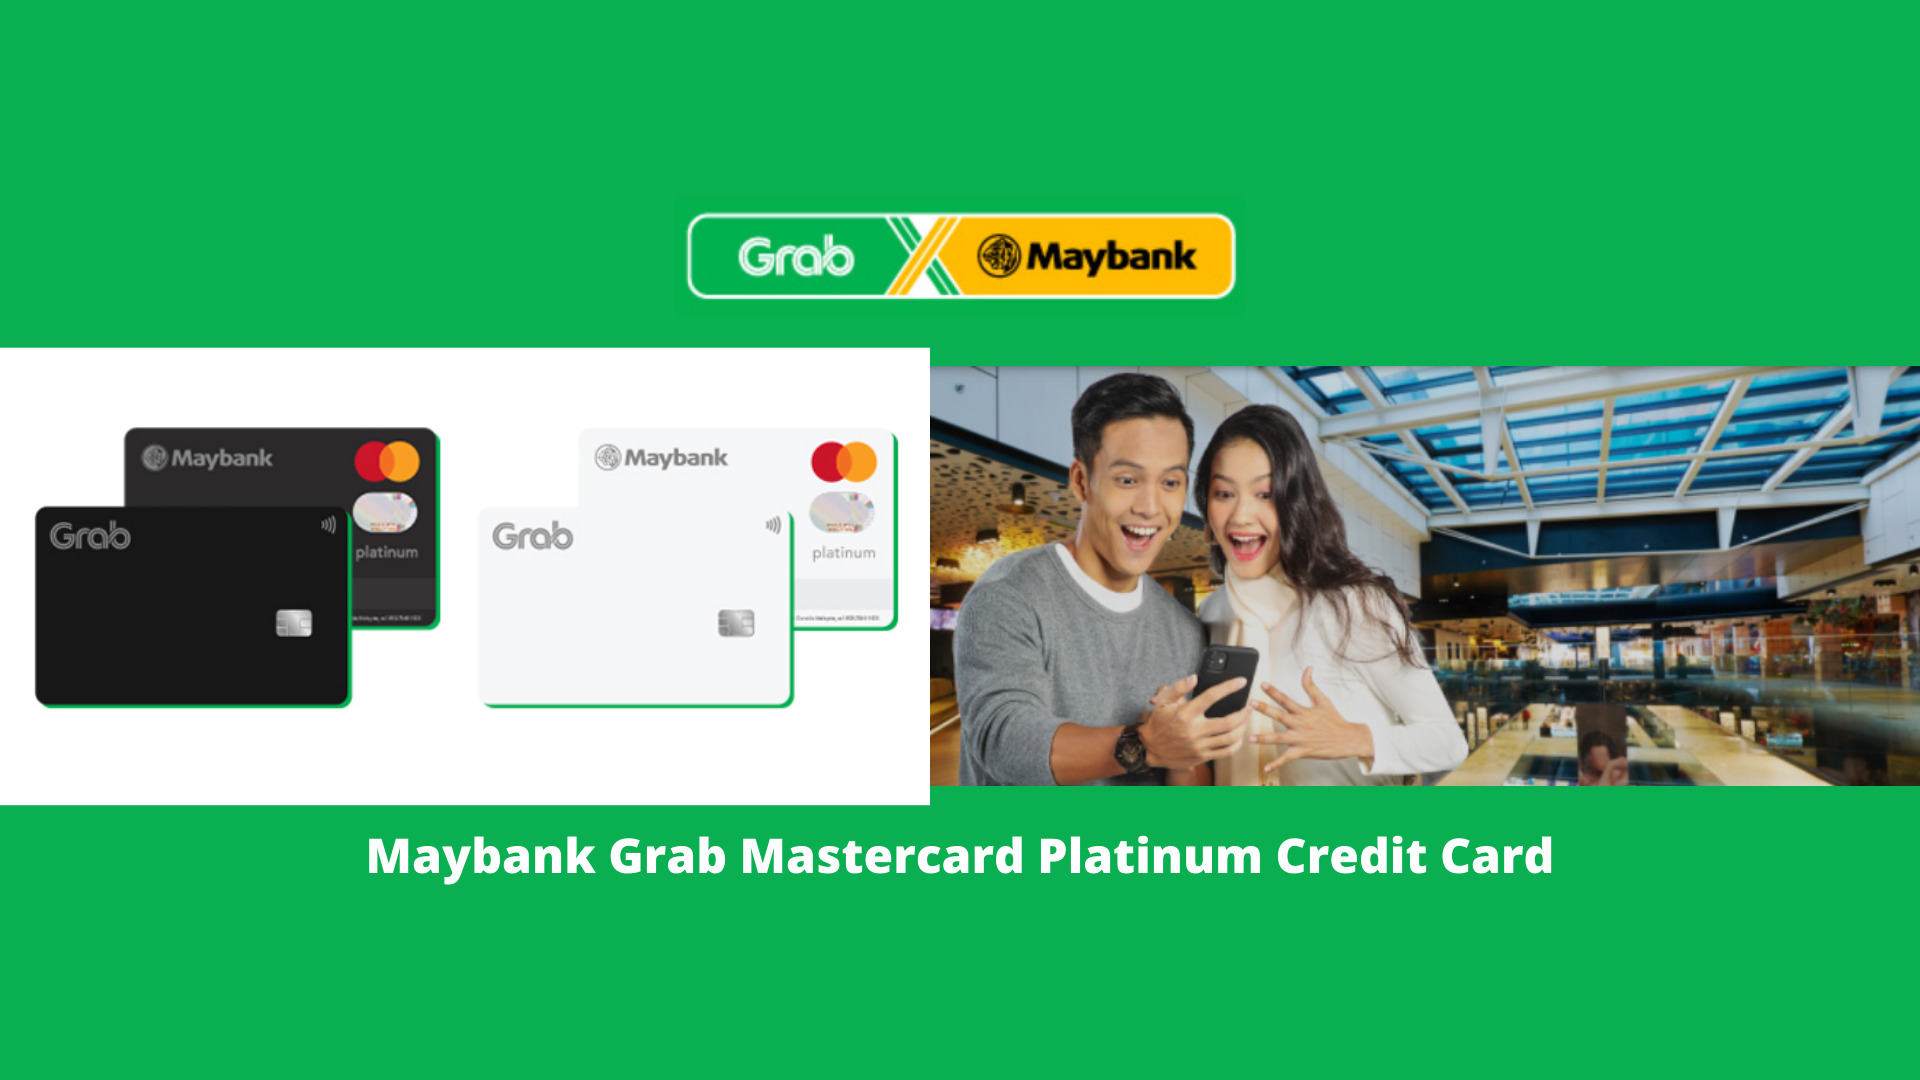 Maybank Grab Mastercard Platinum Credit Card